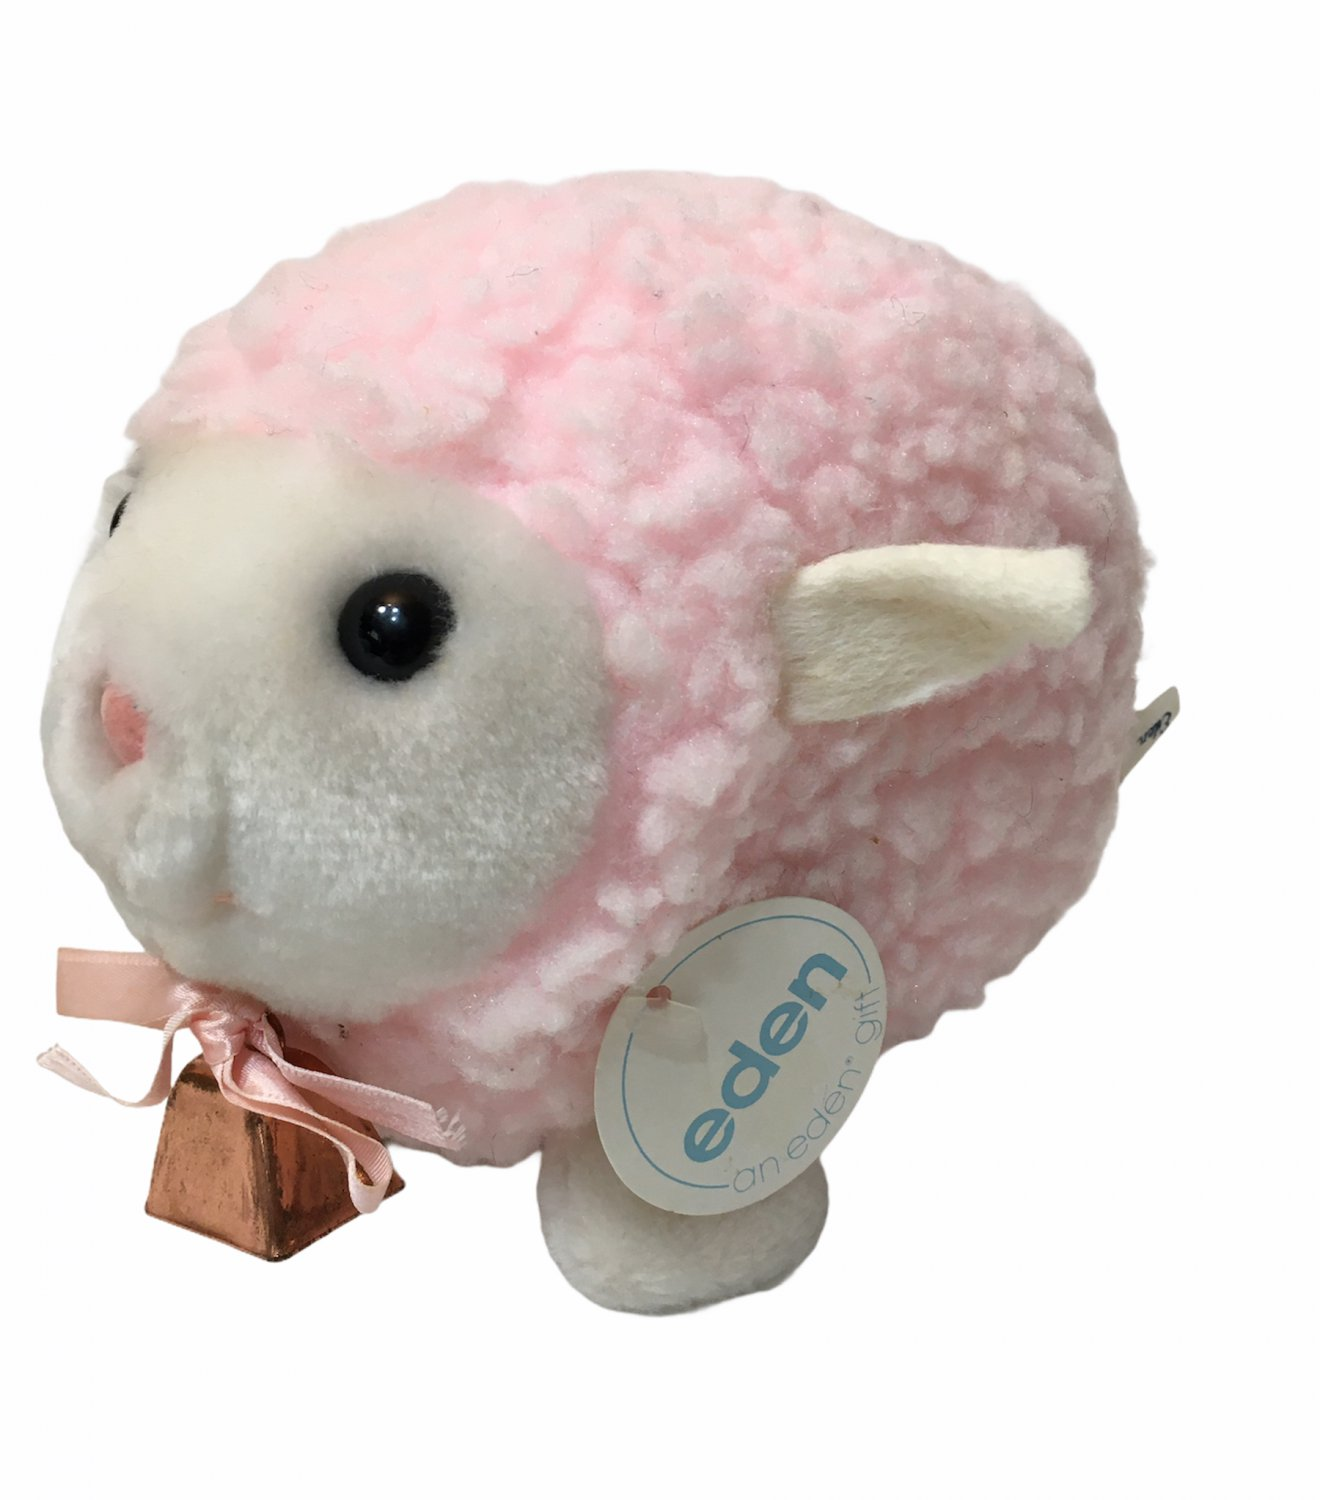 Eden Toys Lamb Sheep Pink Plush Stuffed Animal Vintage Bell Baby Toy Bow 7""